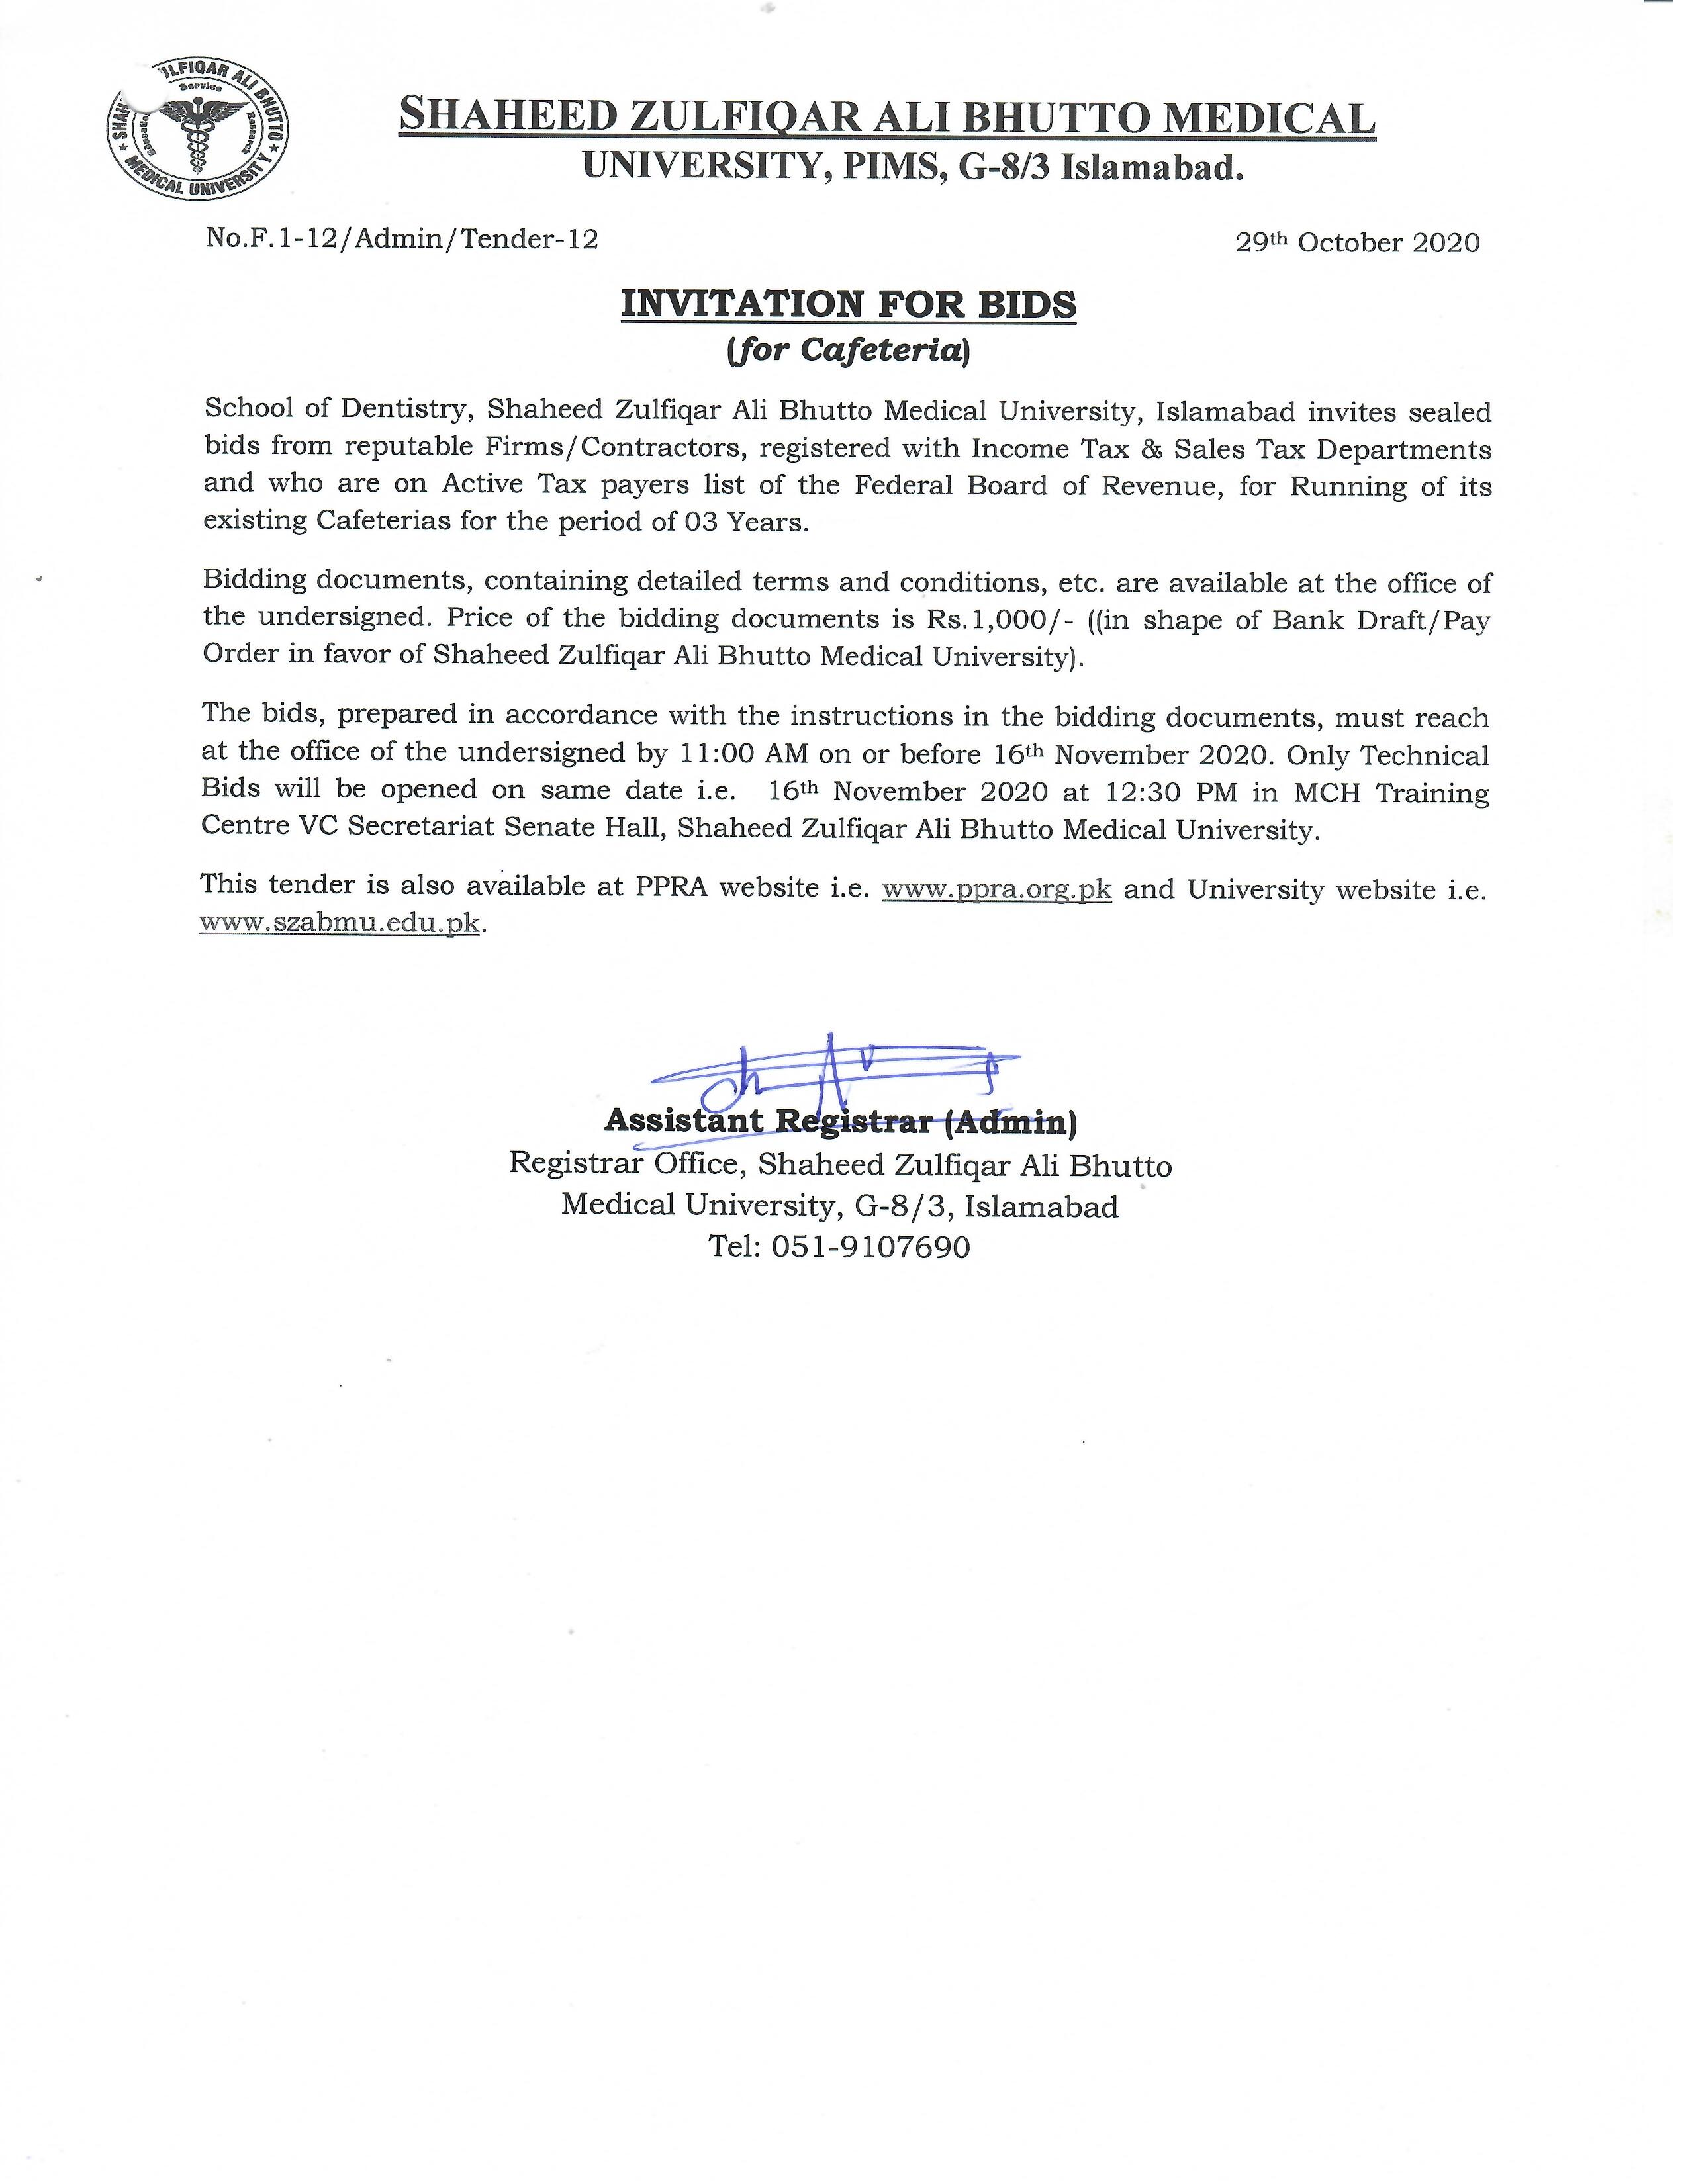 Tender Notice for Cafeteria